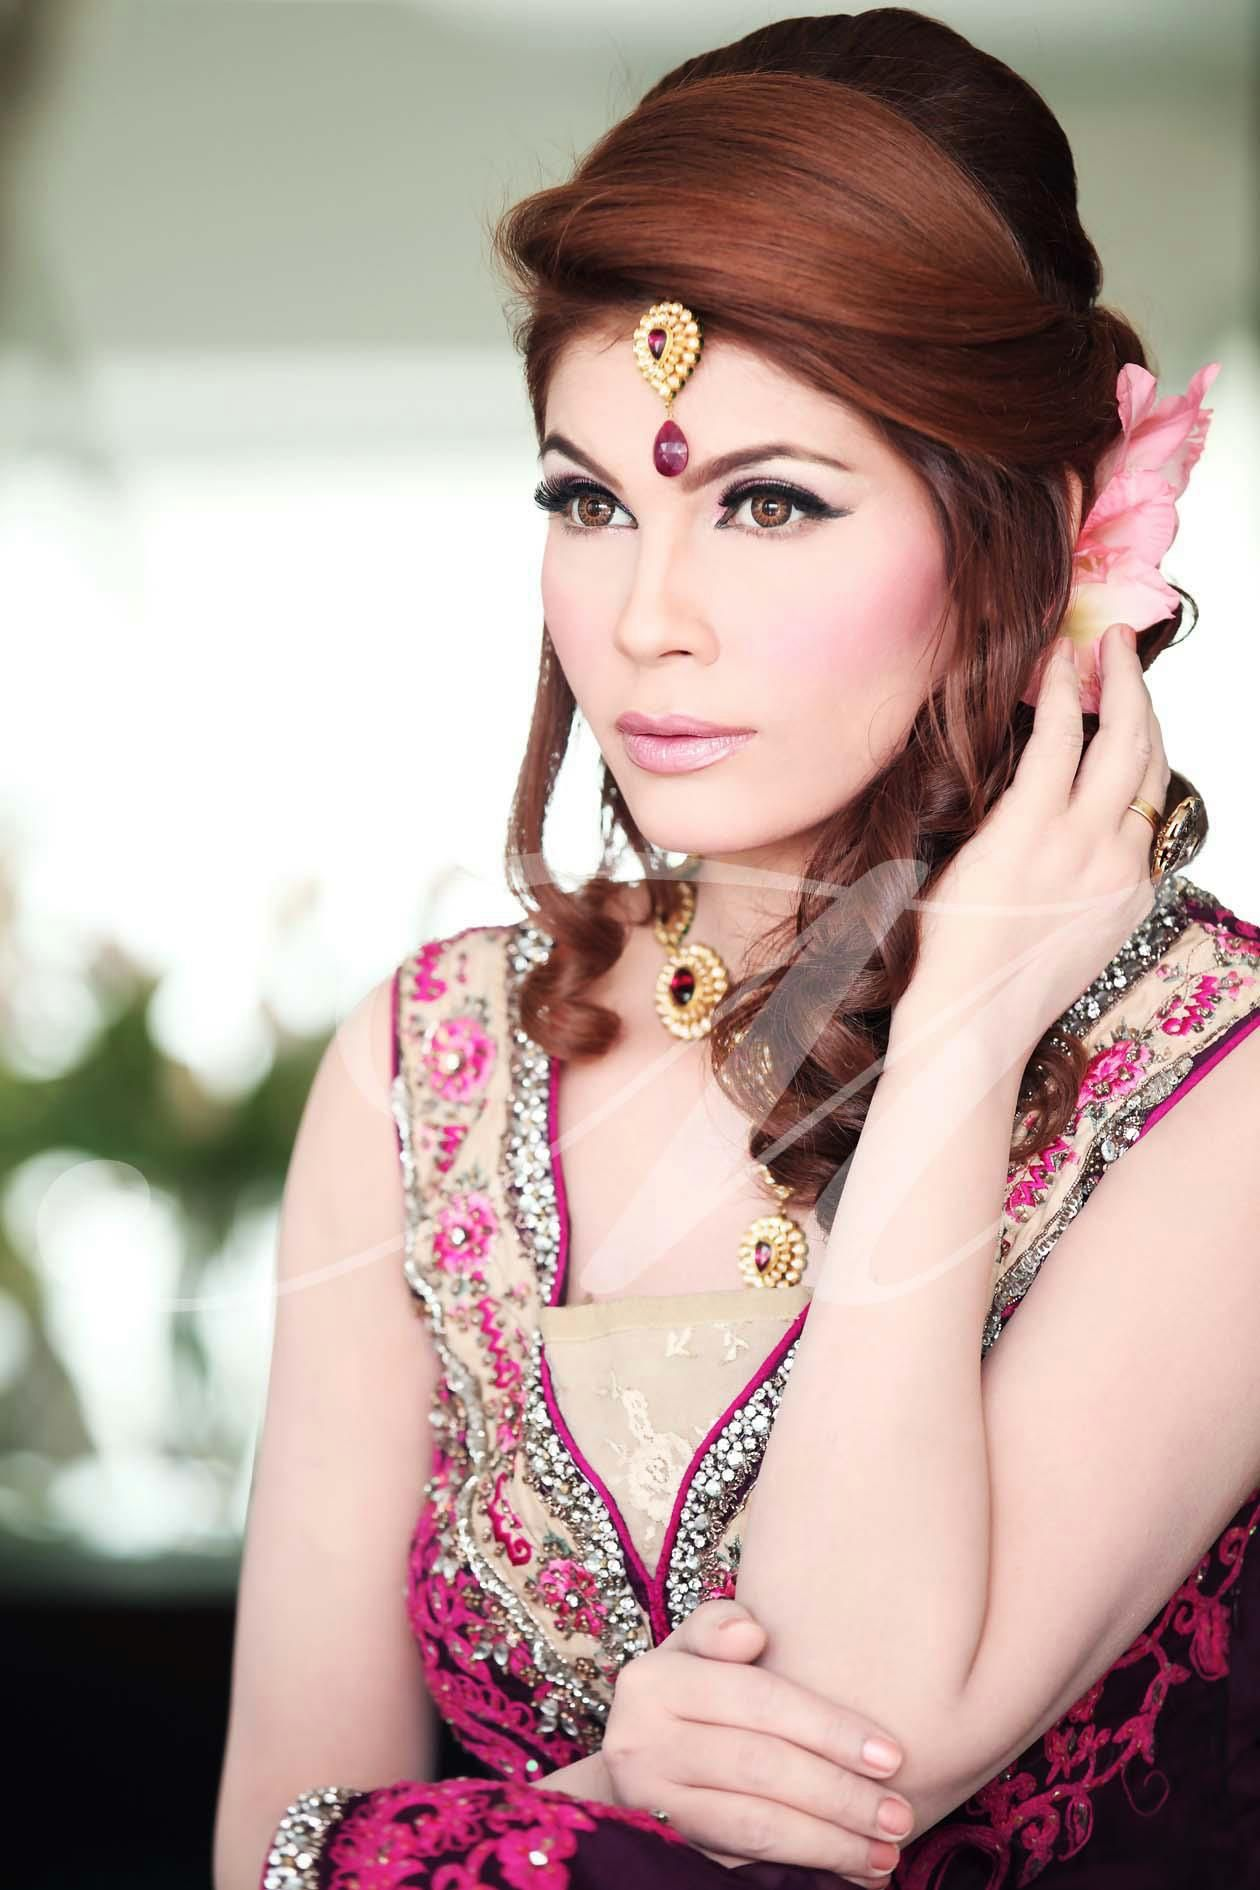 Contemporary Hair Style Complementing The Natural And Soft Makeup - Hairstyle for engagement girl